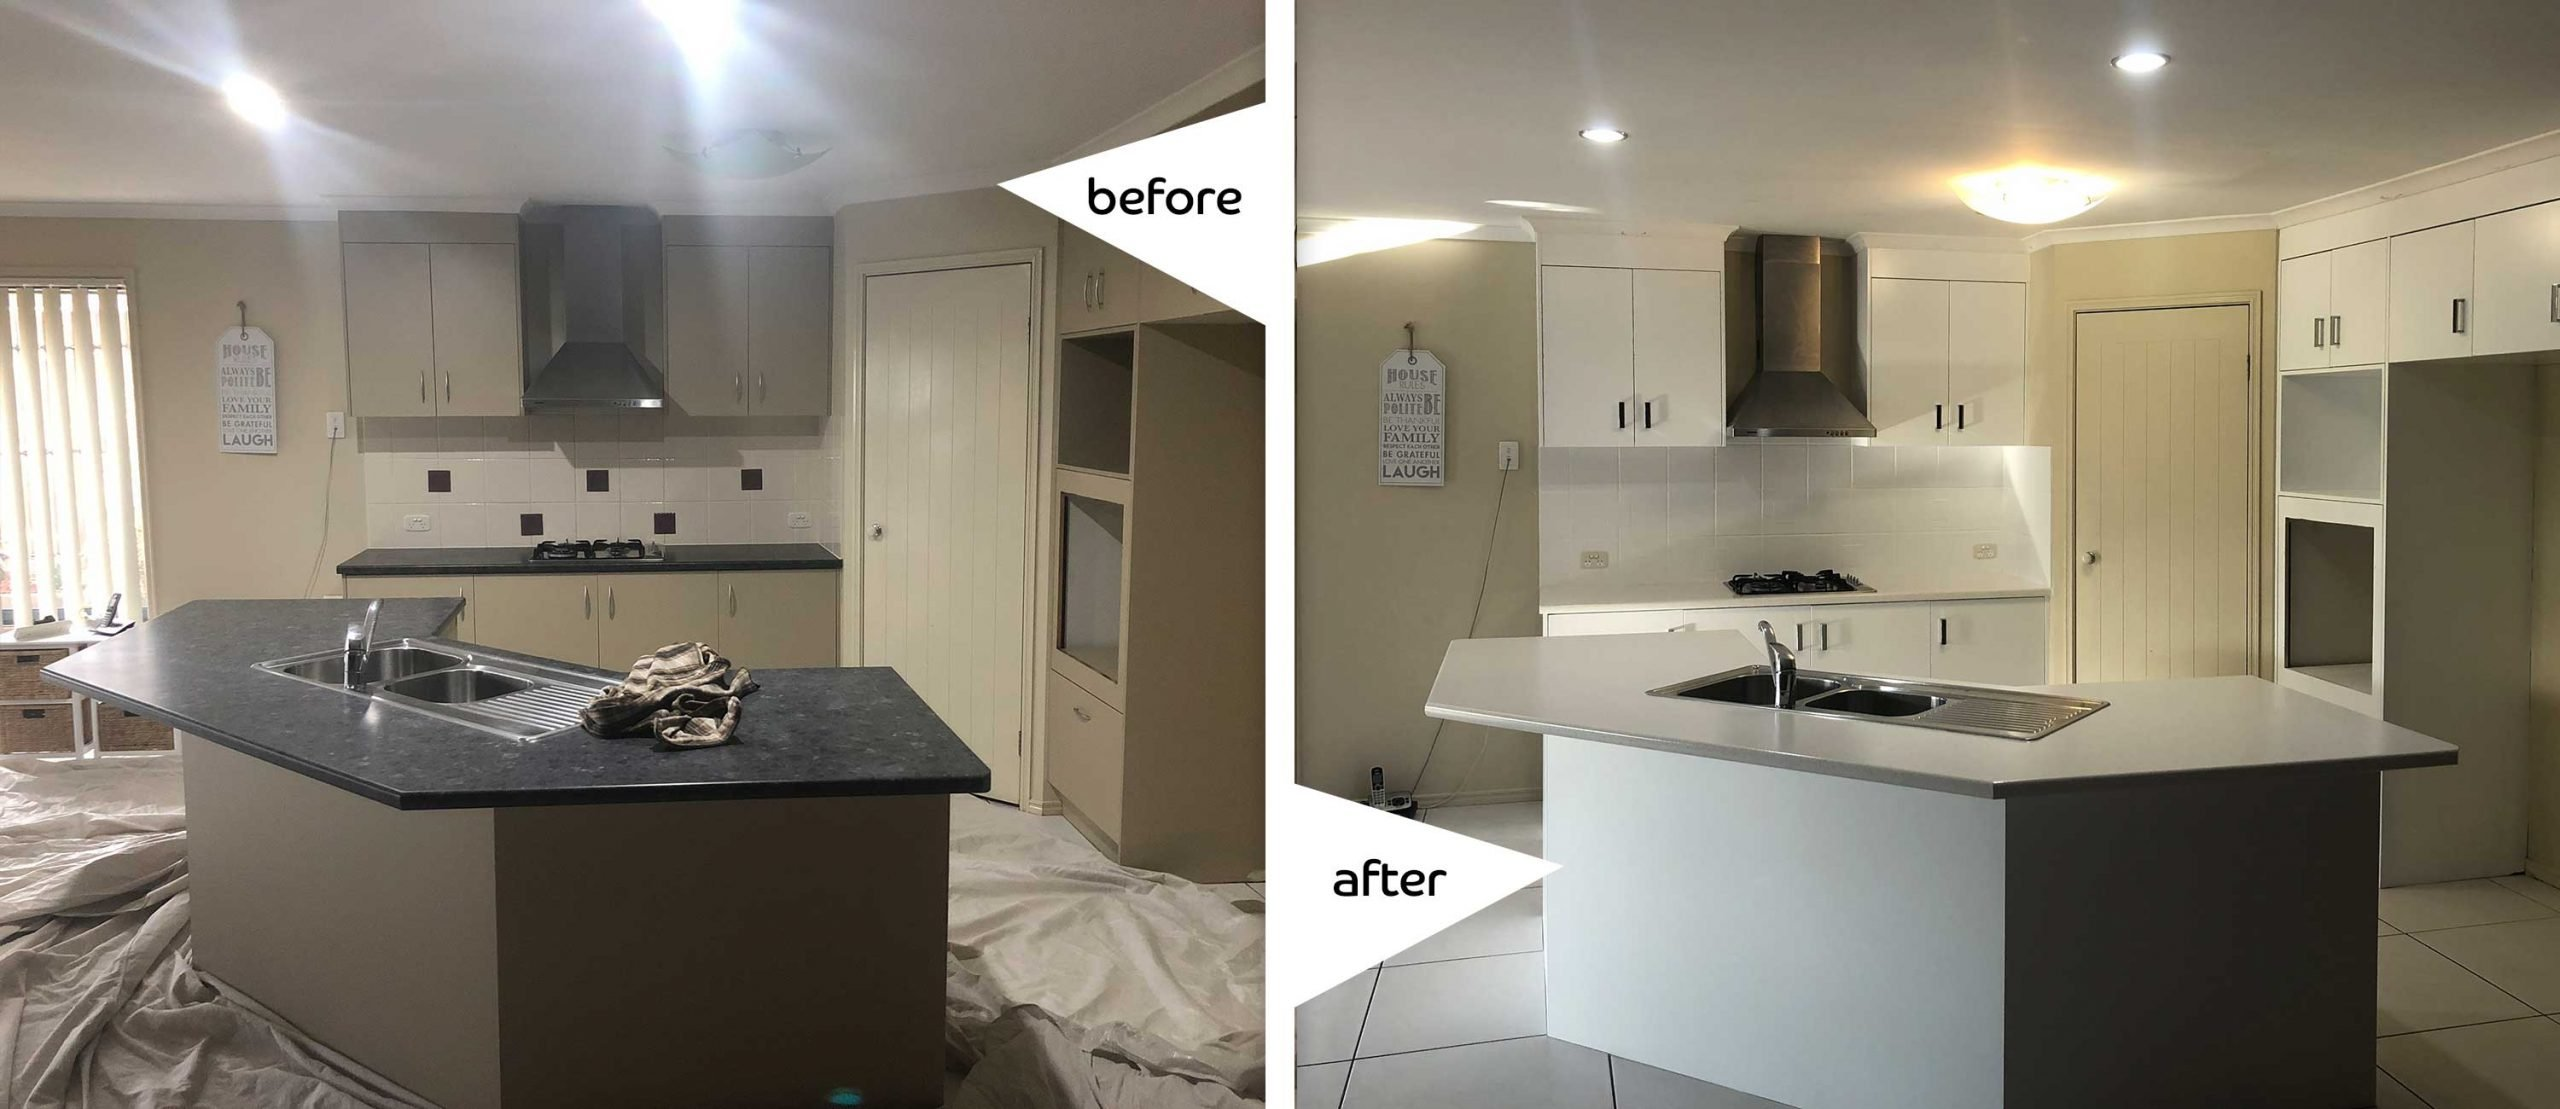 Use custom cabinets to give your kitchen a new look Cabinet Project - 1